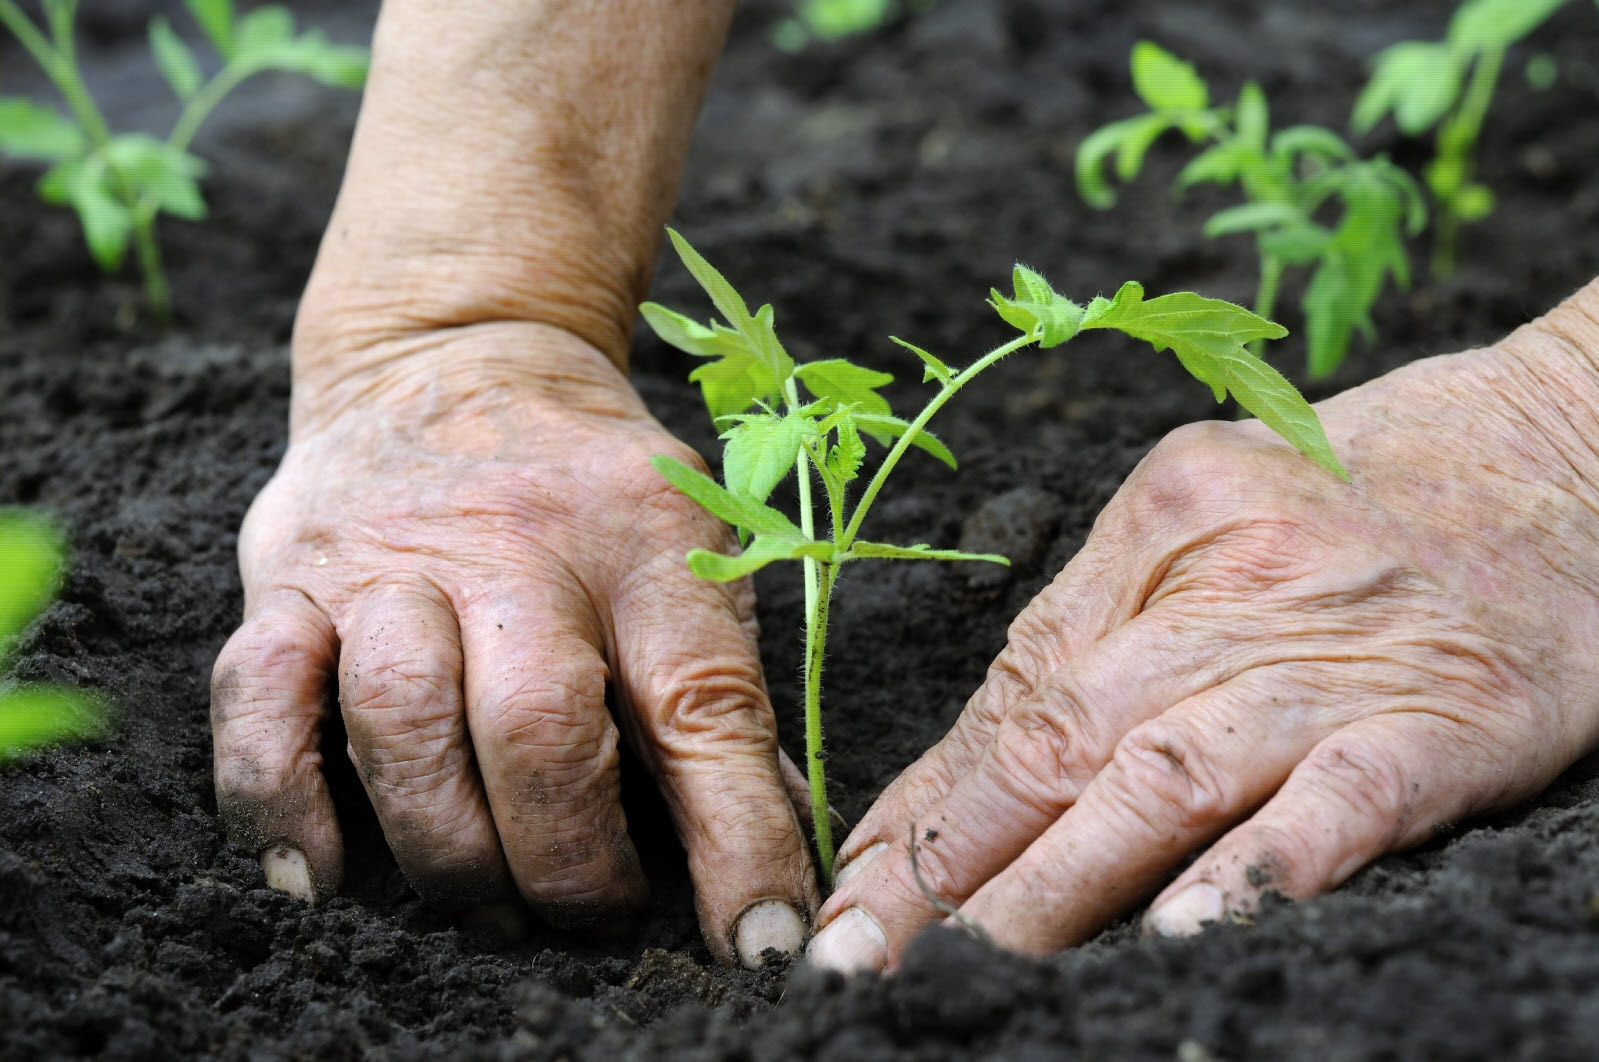 CSR, sustainability, planting, nature, grow, growth, investing, earth, soil, care